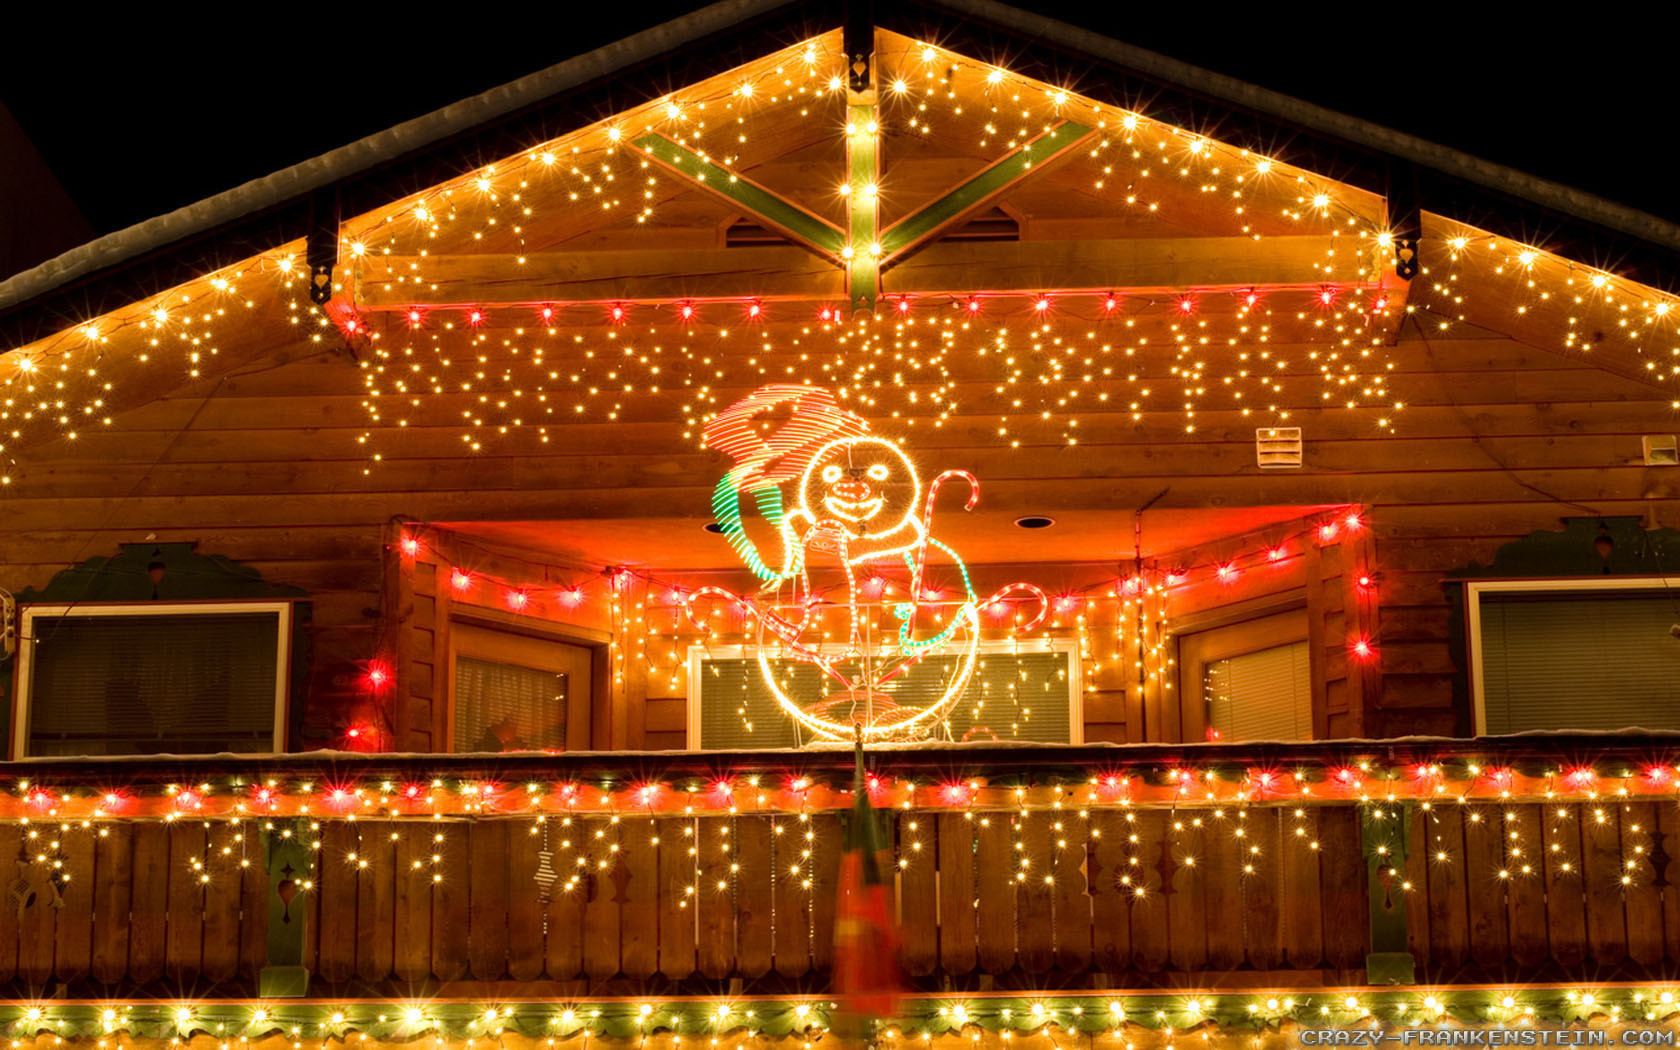 Christmas Rooftop Decorations  Outdoor Christmas Decorations wallpapers Crazy Frankenstein